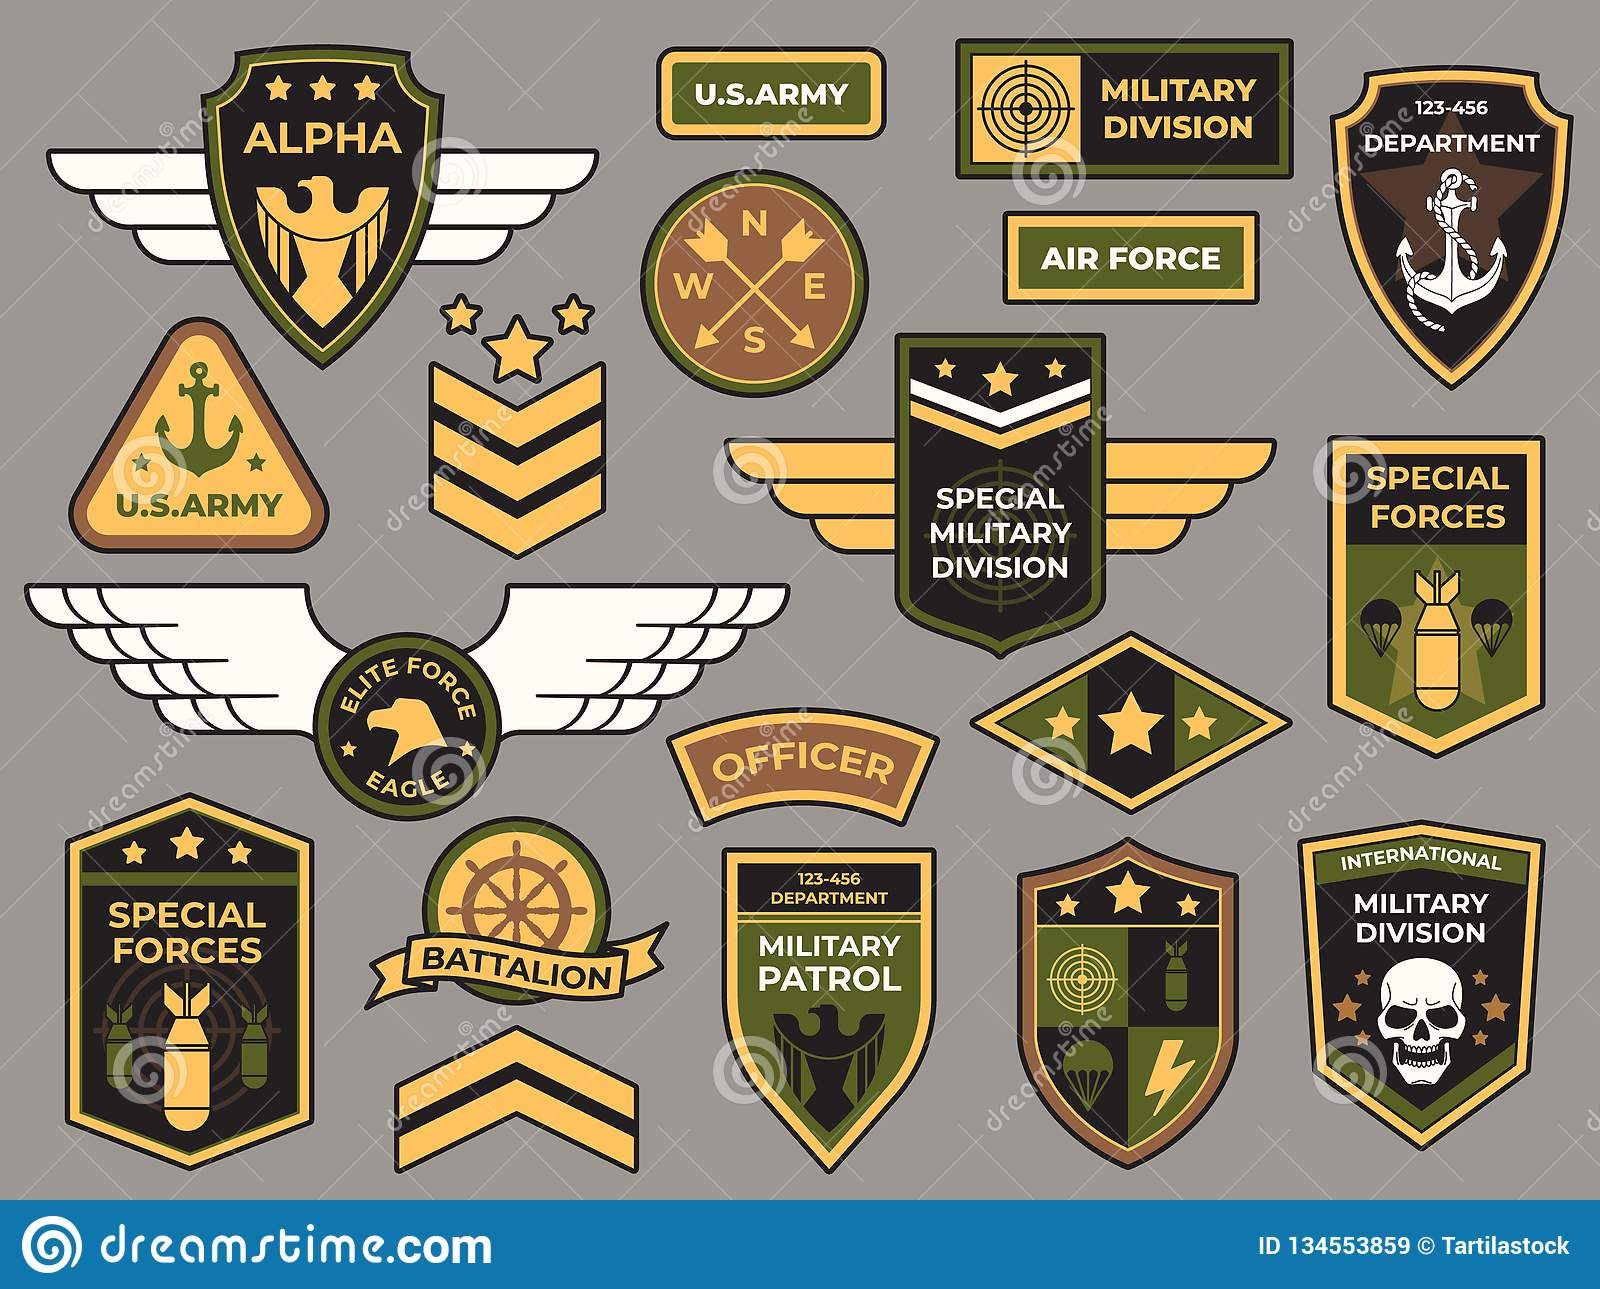 Army Badges Military Patch Air Force Captain Sign And Paratrooper